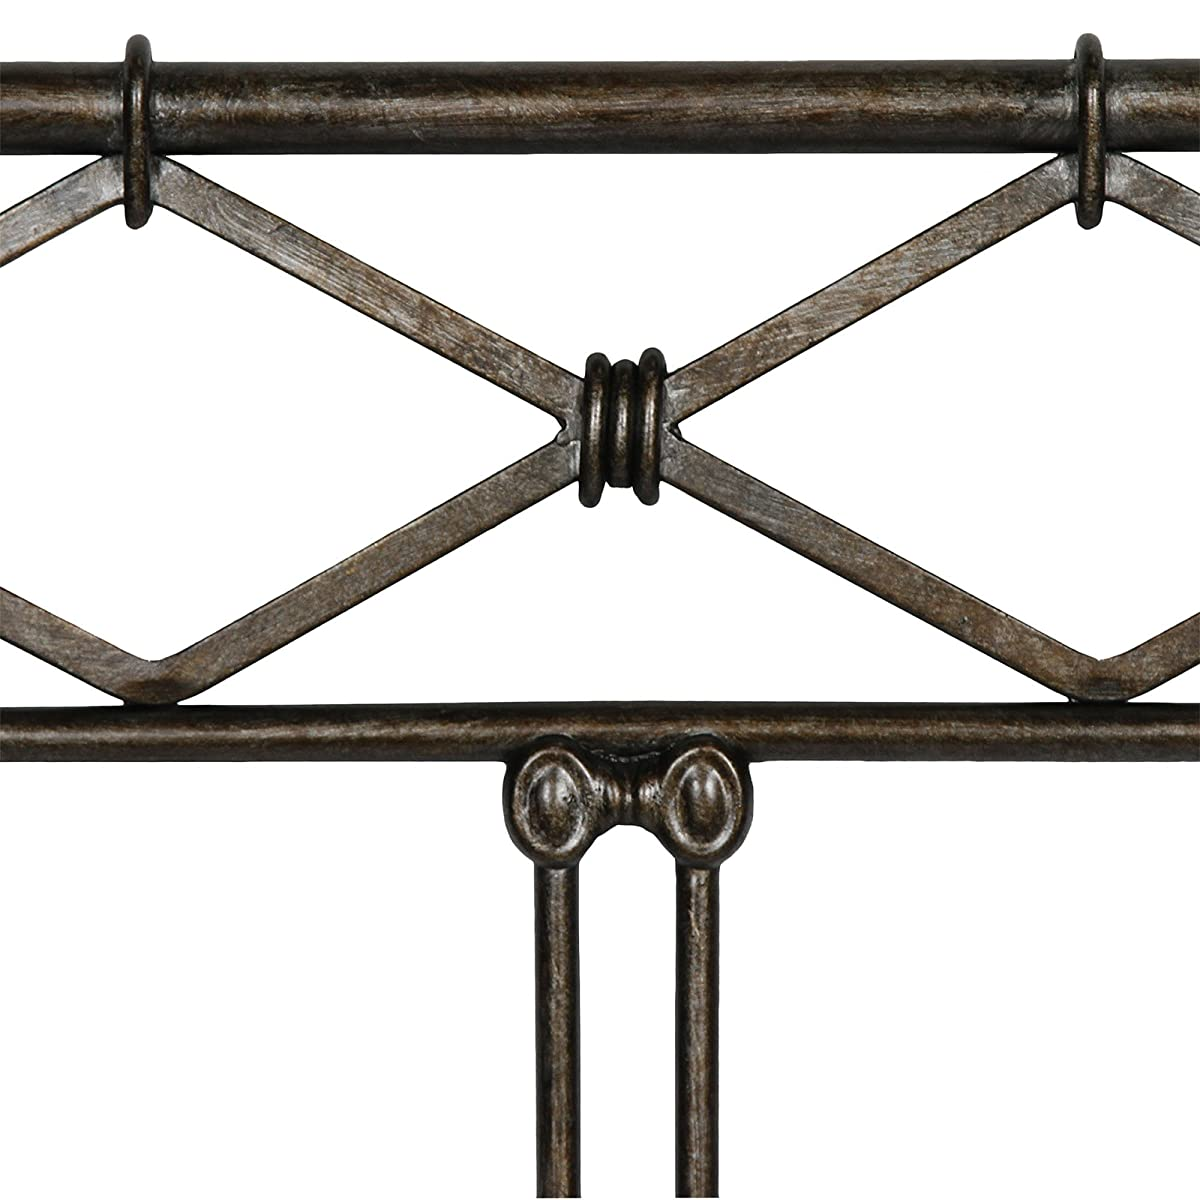 Fashion Bed Group Argyle Headboard with Round Finial Posts and Diamond Wire Metal Grill Design, Copper Chrome Finish, Queen